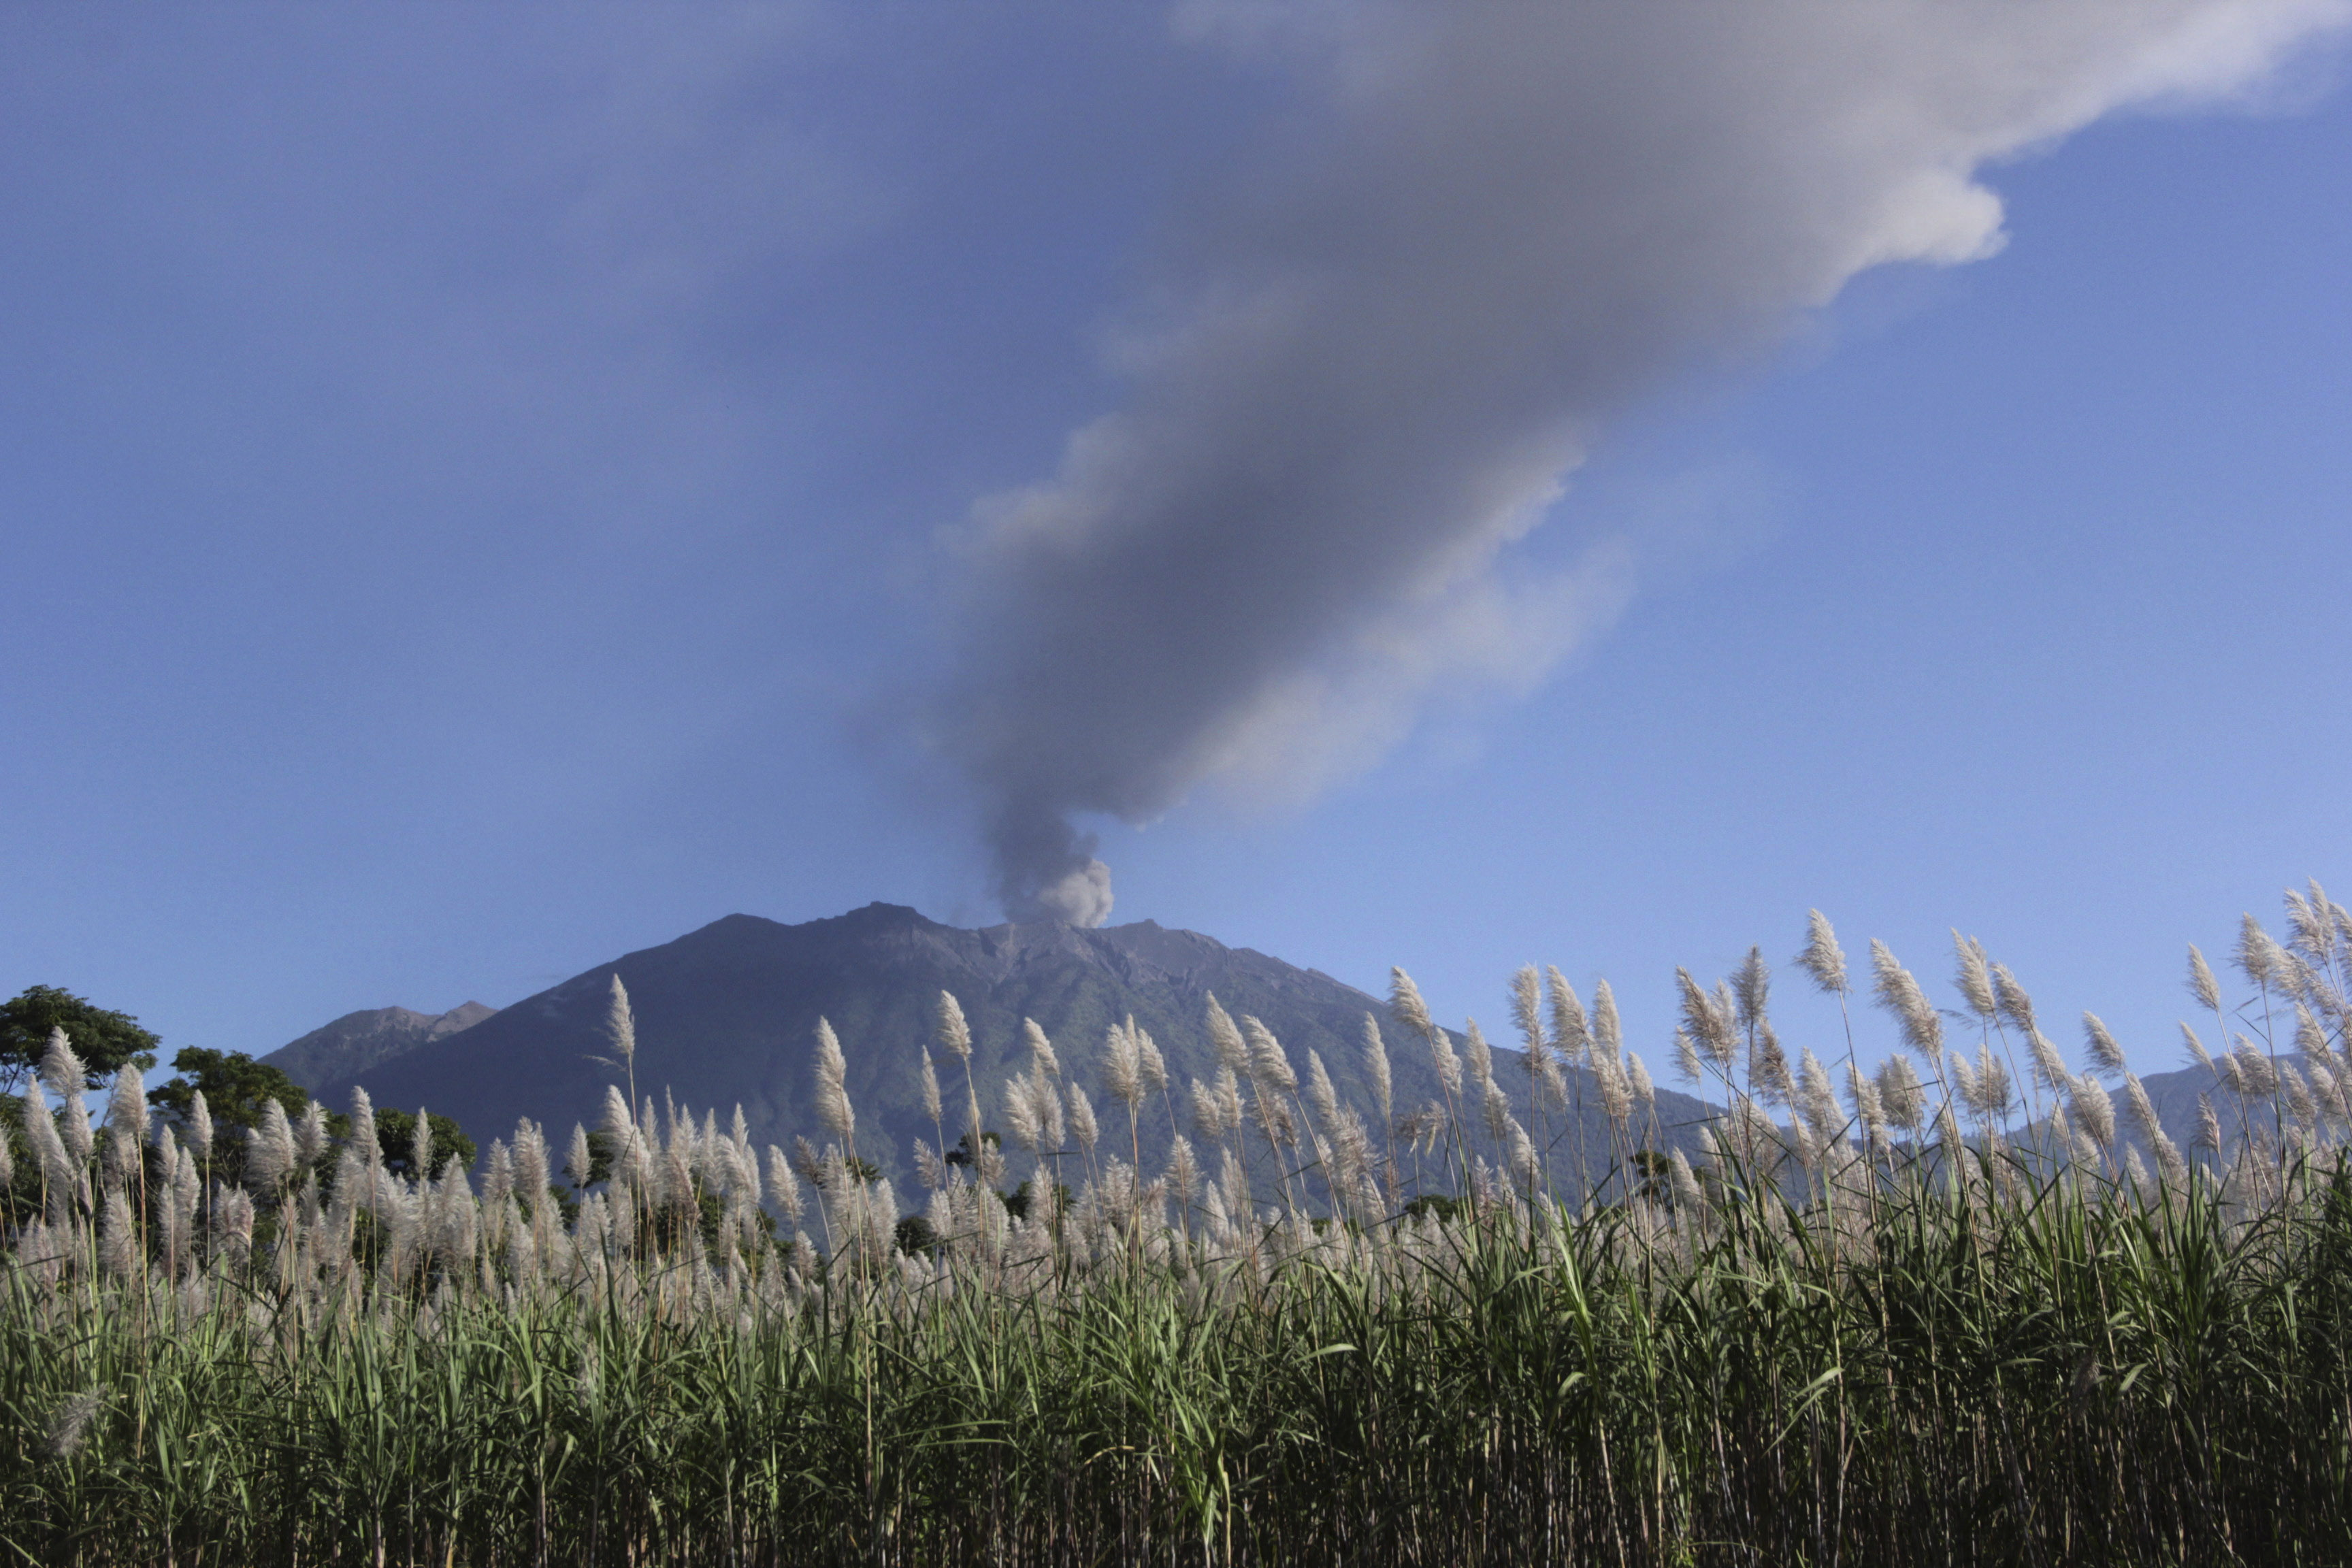 Ash and smoke are emitted from the volcano Mount Raung seen from the village of Sumber Arum, near Banyuwangi, East Java province,  Indonesia on July 4, 2015